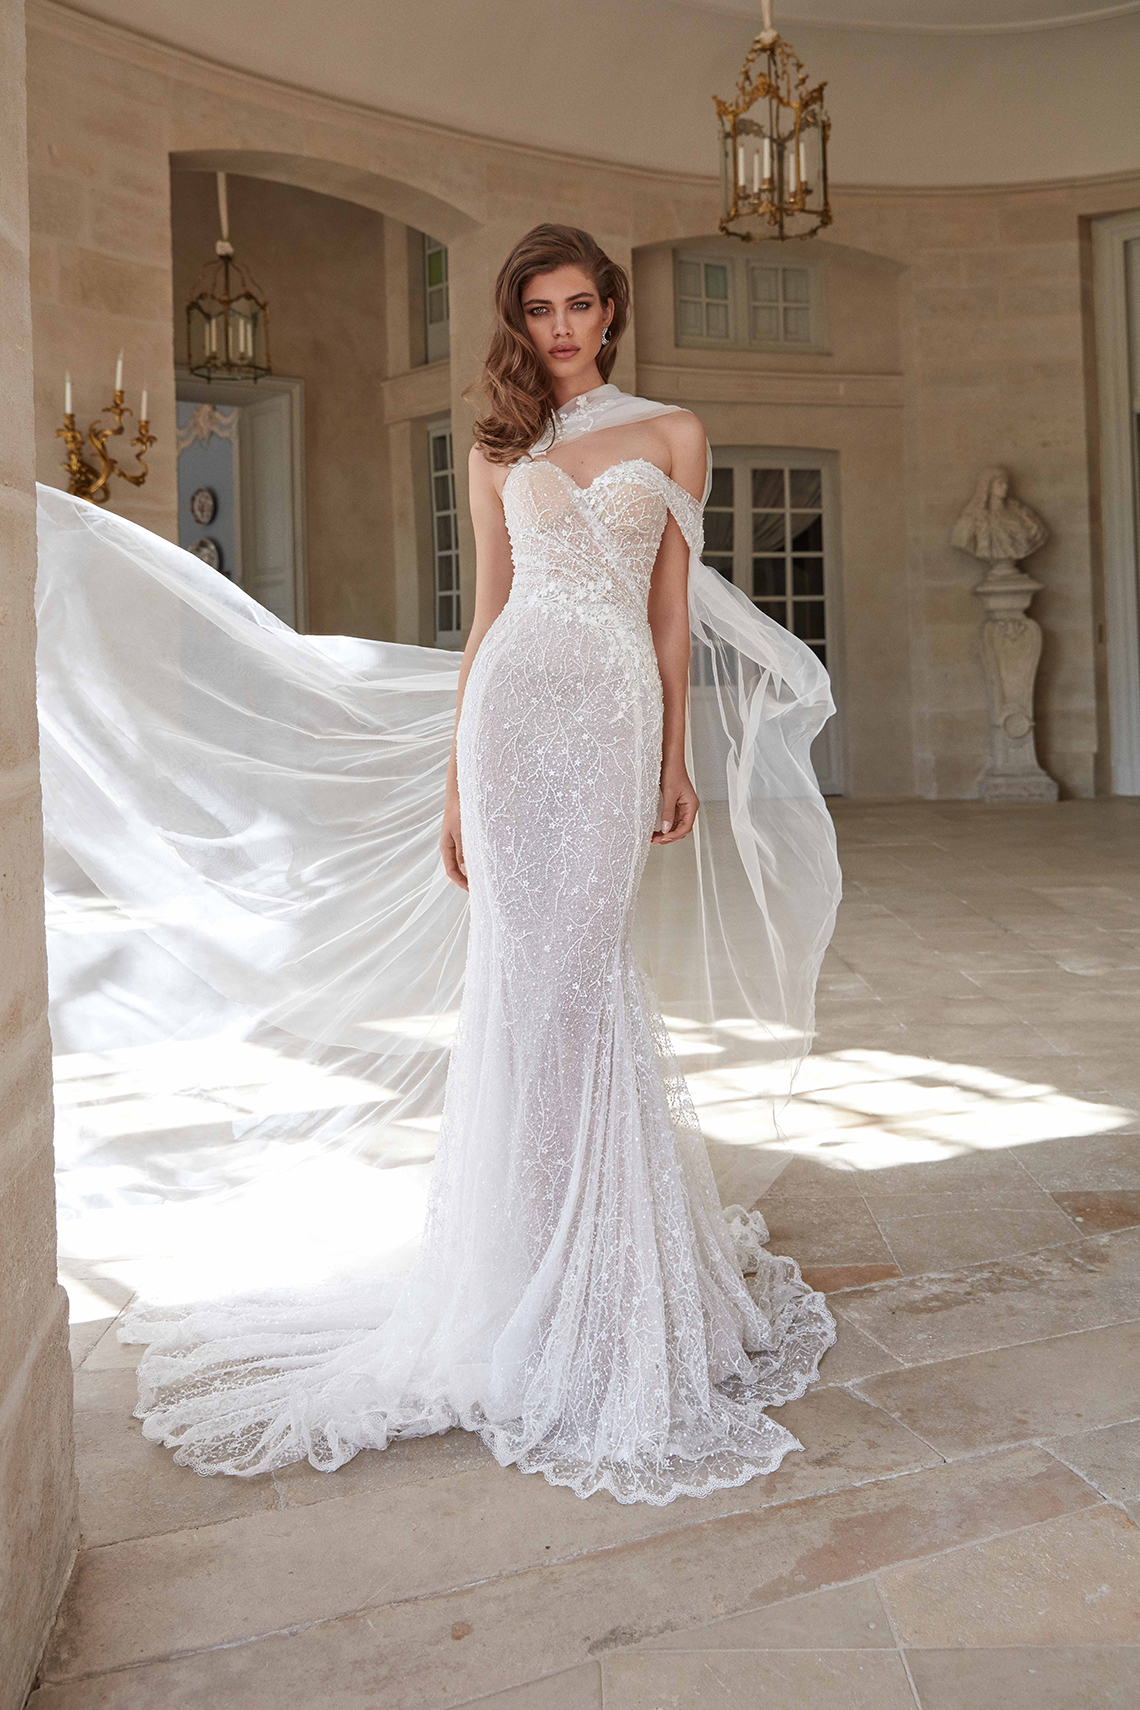 Galia Lahav Fancy White 2020 Wedding Dress Collection – simone 5